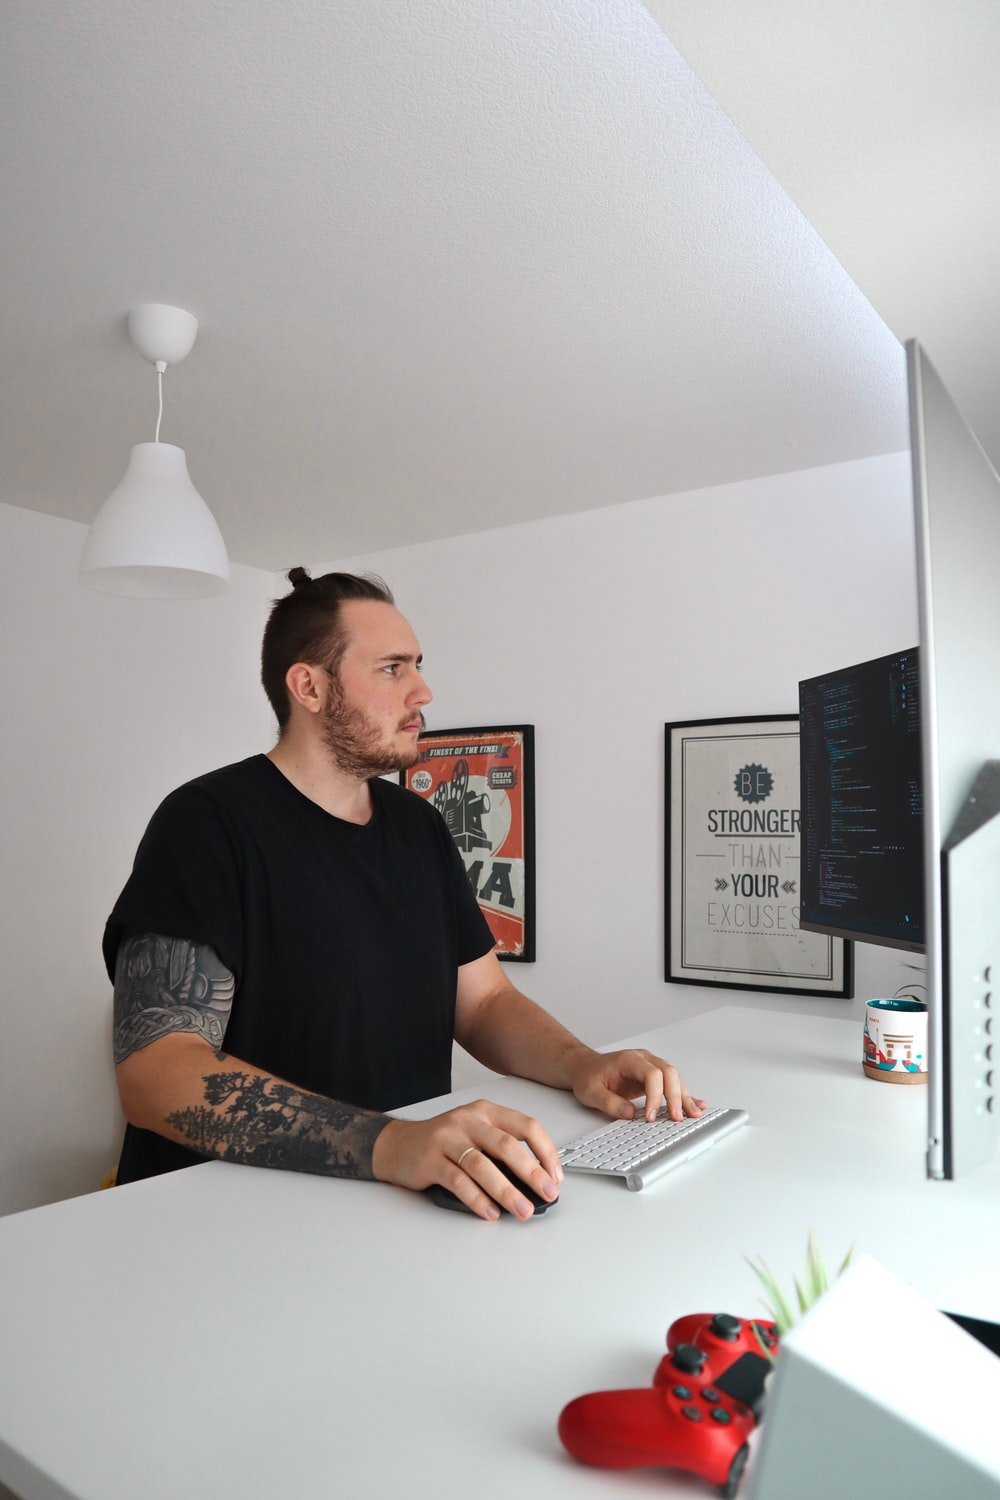 standing man wearing black crew-neck t-shirt holding mouse and keyboard